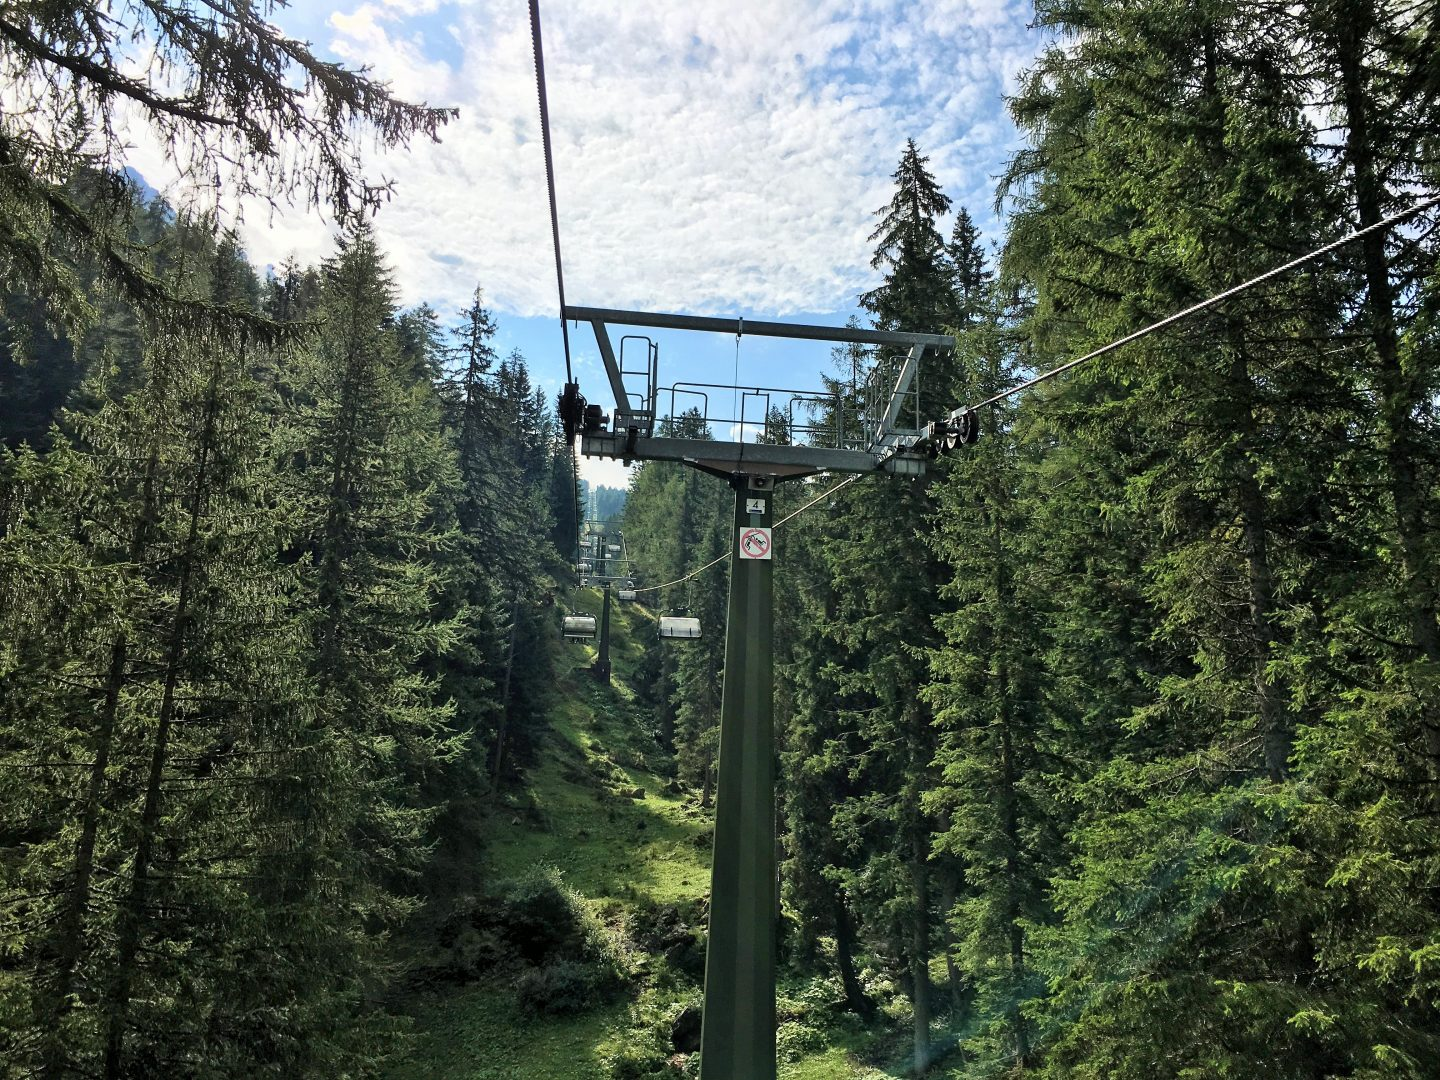 Oberholz chairlift, Dolomites Italy